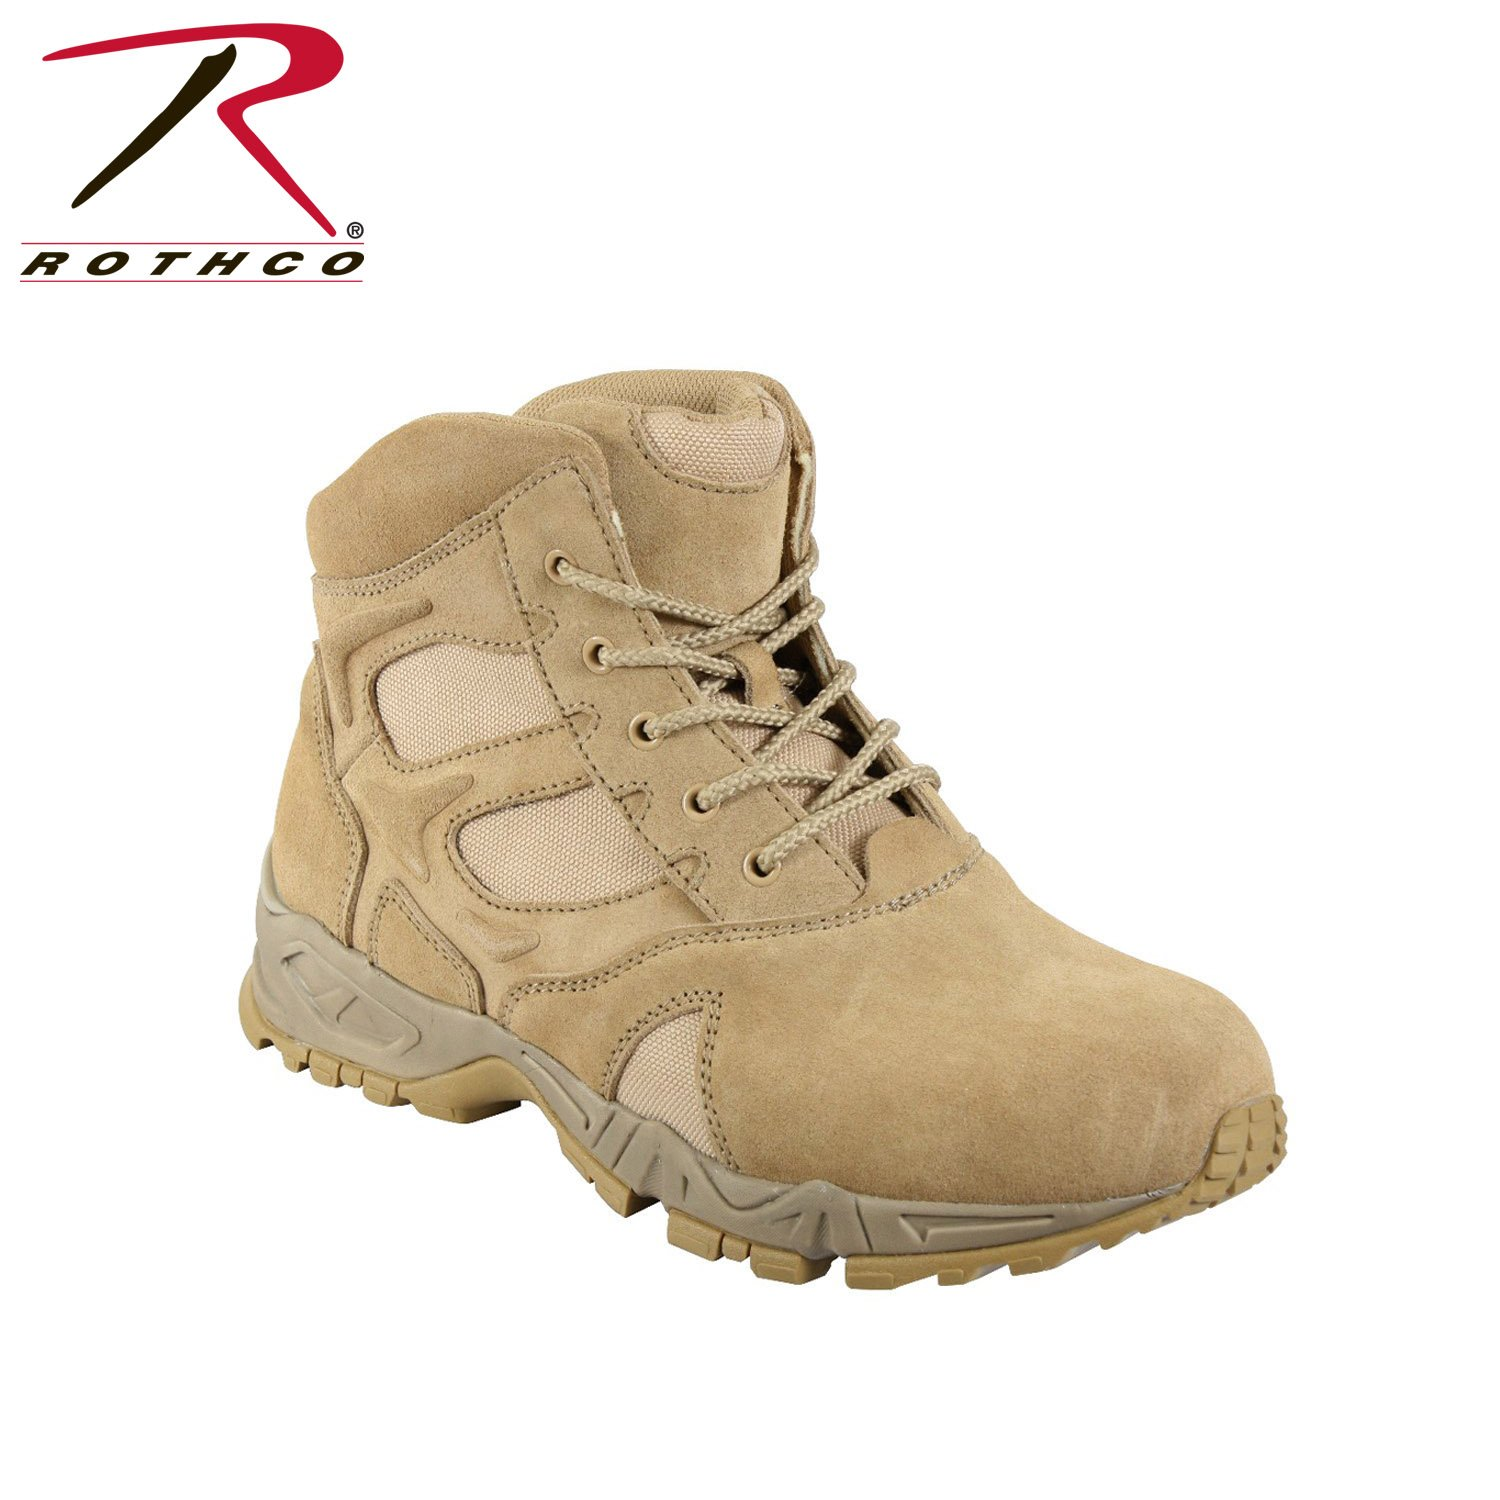 "Desert Forced Entry Deployment Combat Tactical 6"" Boots, Size 10W"